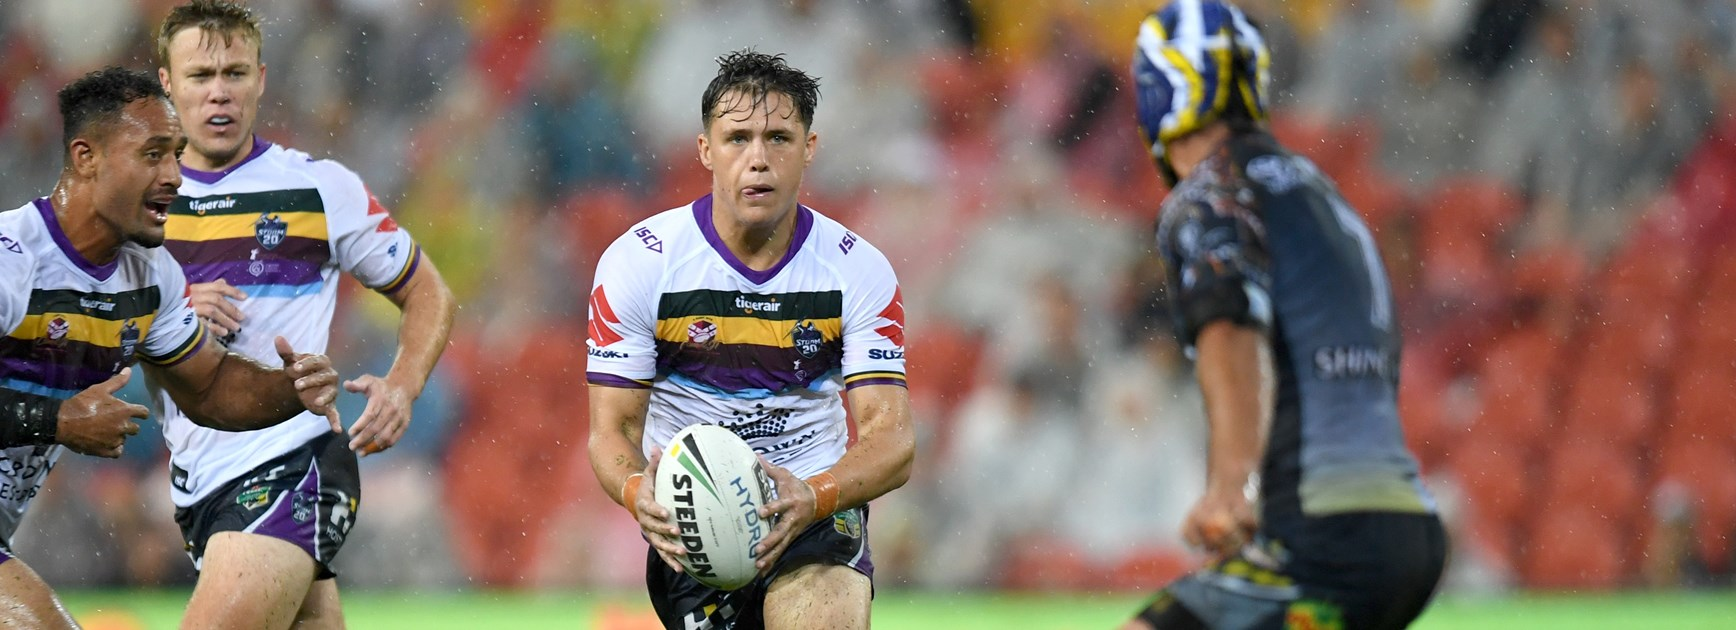 2019 NRL signings: Storm sign three; Cowboys' new fullback